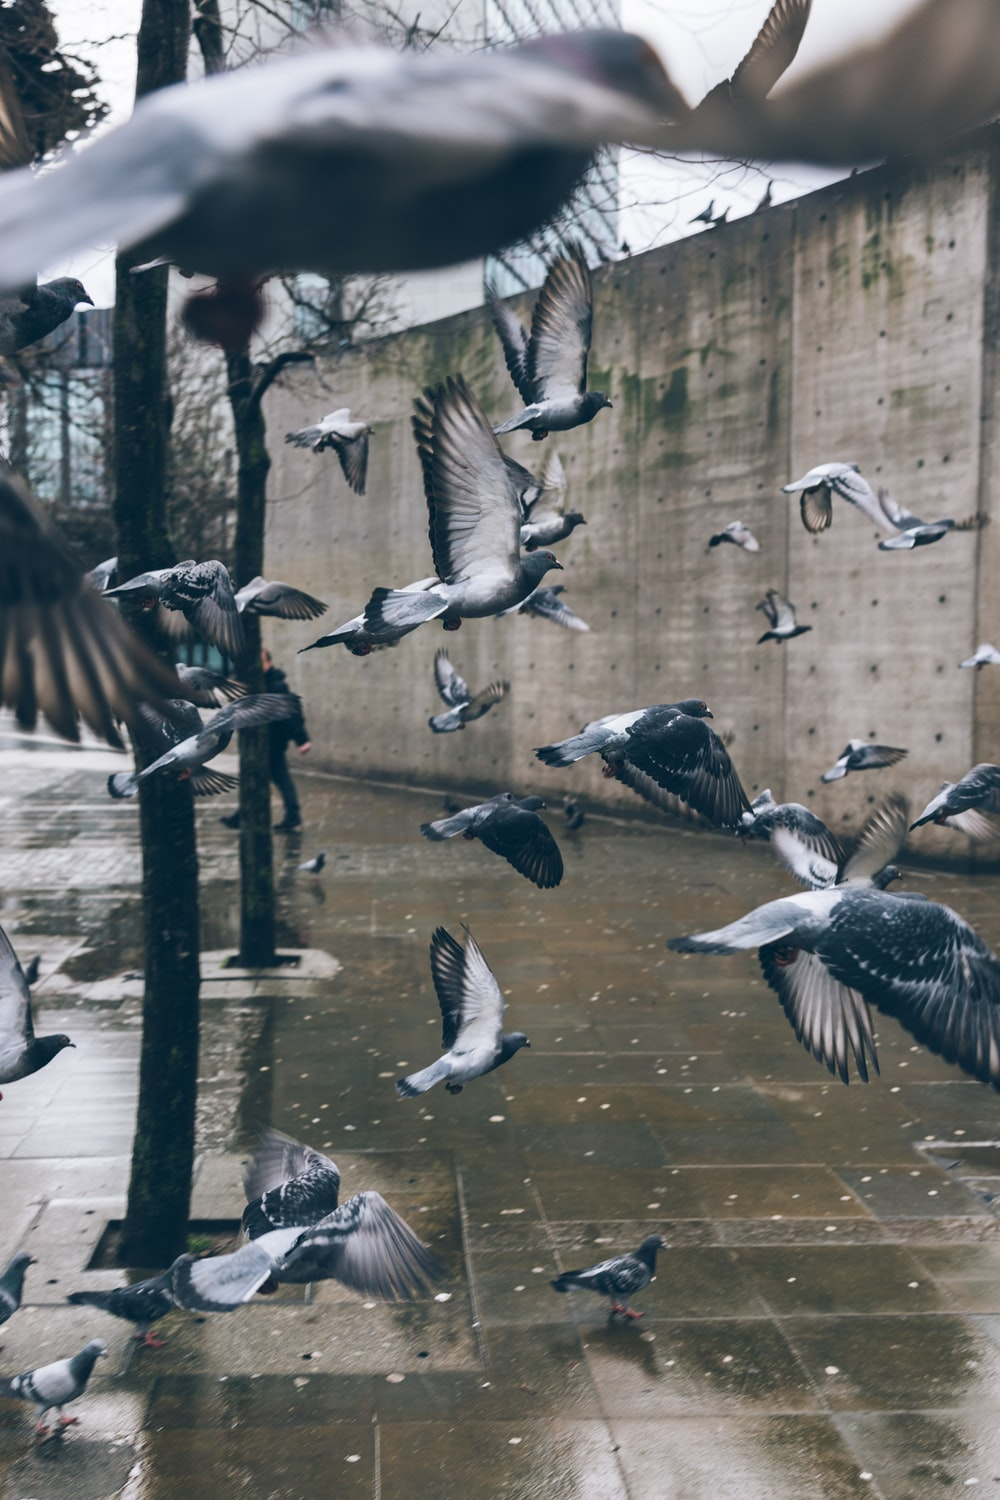 photo of flying bird near pavement and wall